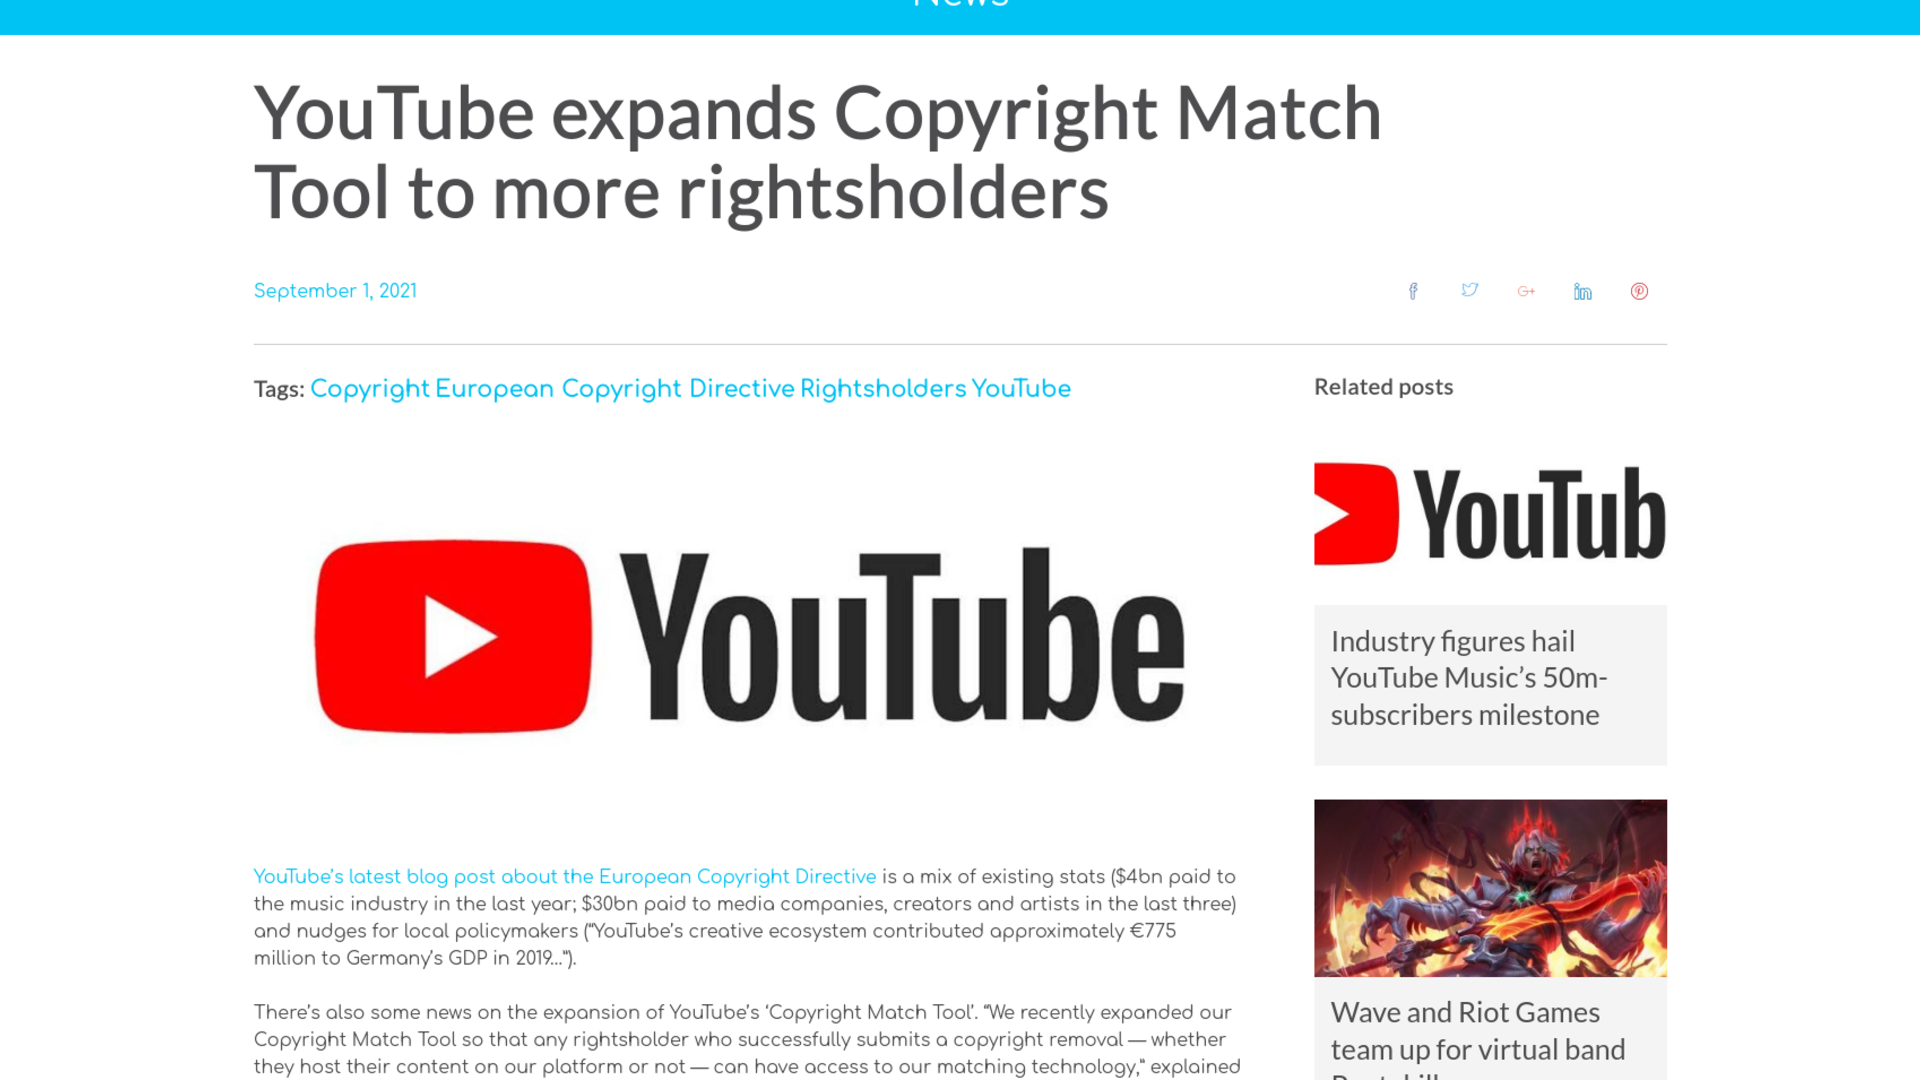 Fairness Rocks News YouTube expands Copyright Match Tool to more rightsholders